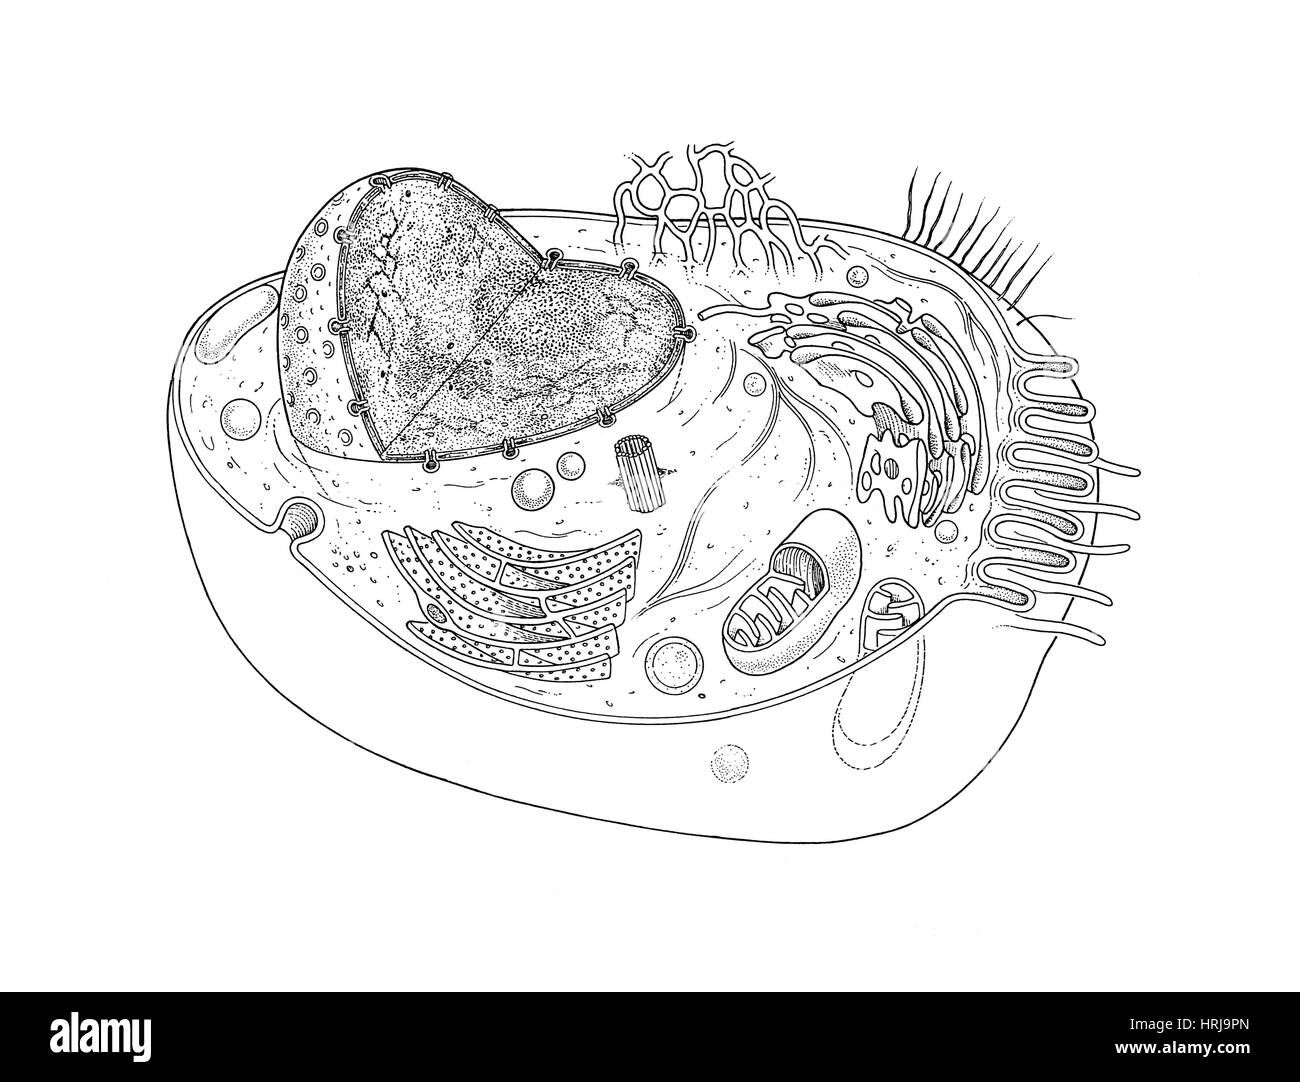 Animal cell diagram stock photo 135012493 alamy animal cell diagram ccuart Gallery